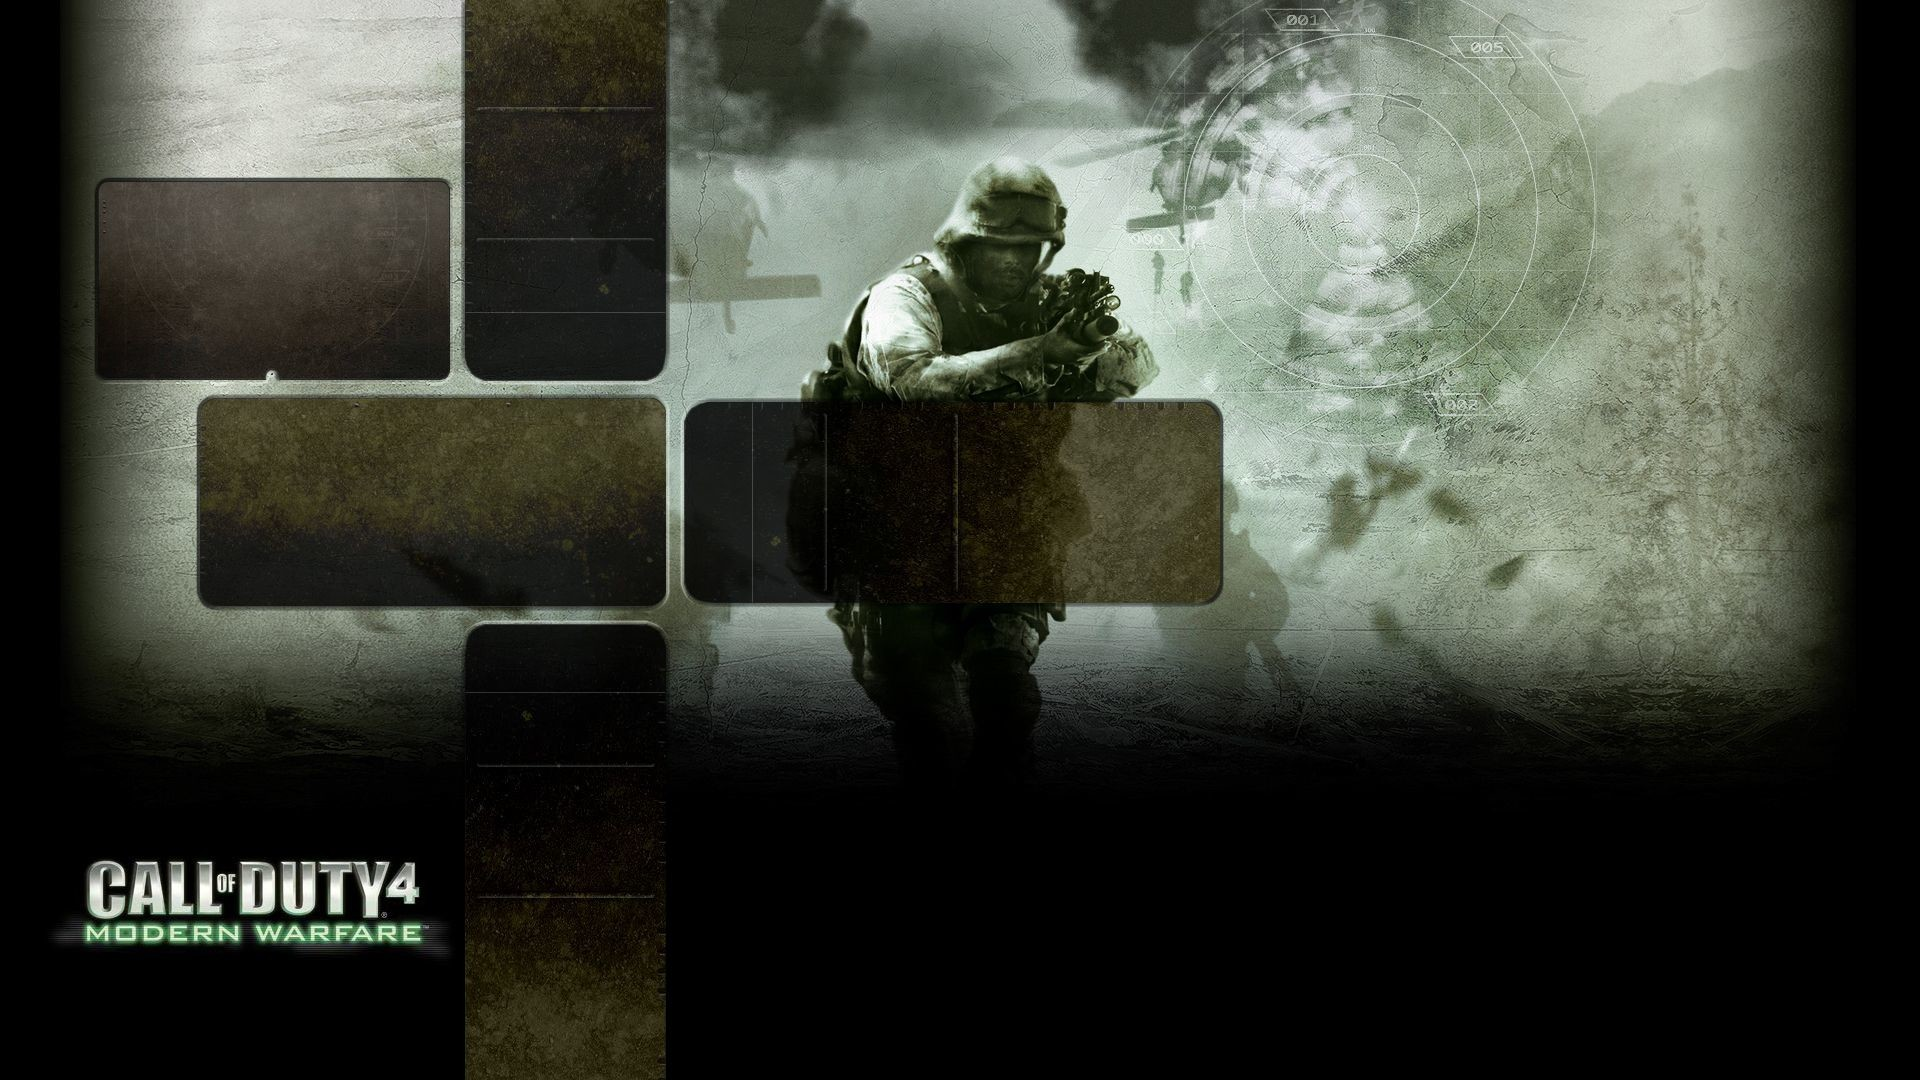 Ps3 Hd Wallpapers 1080p 75 Images